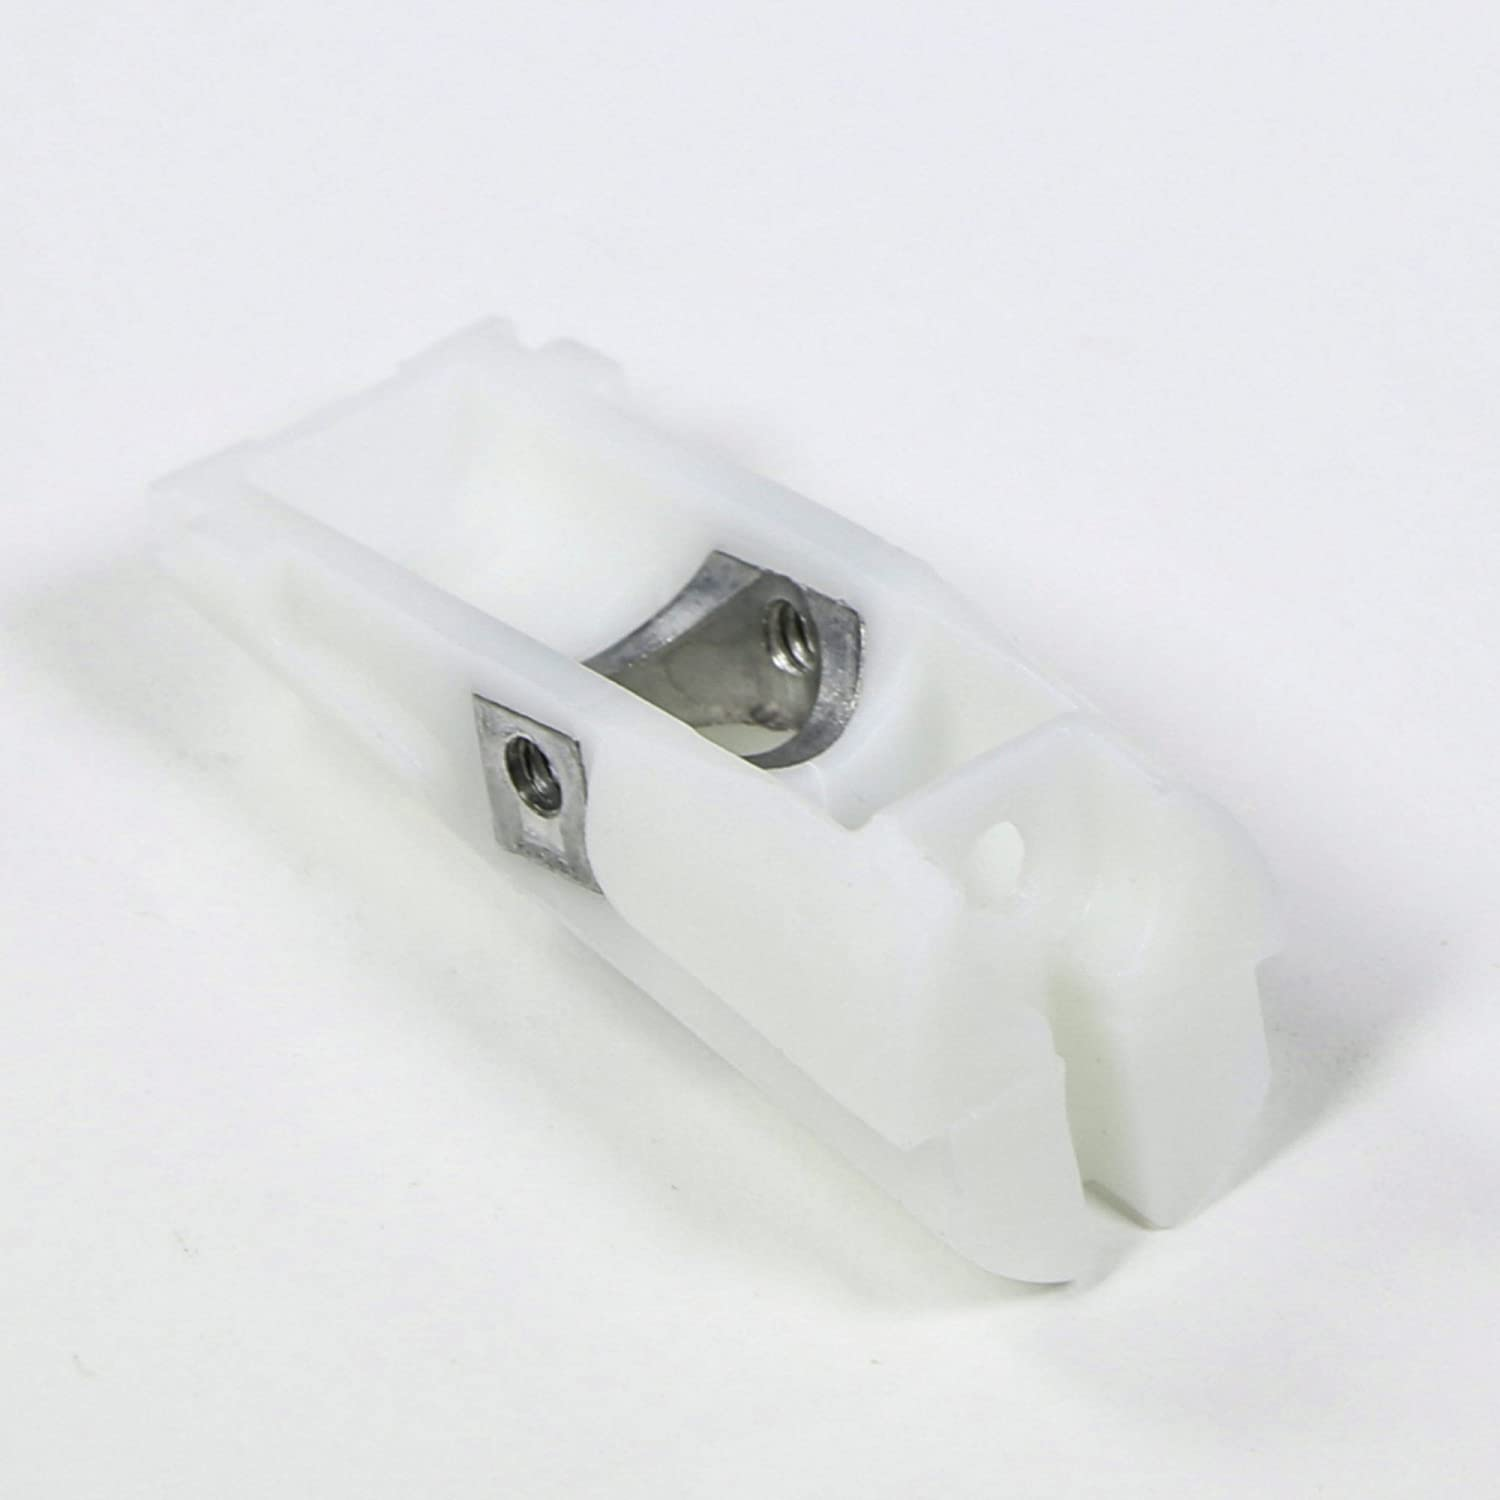 Samsung DA61-07540A Freezer Handle Support